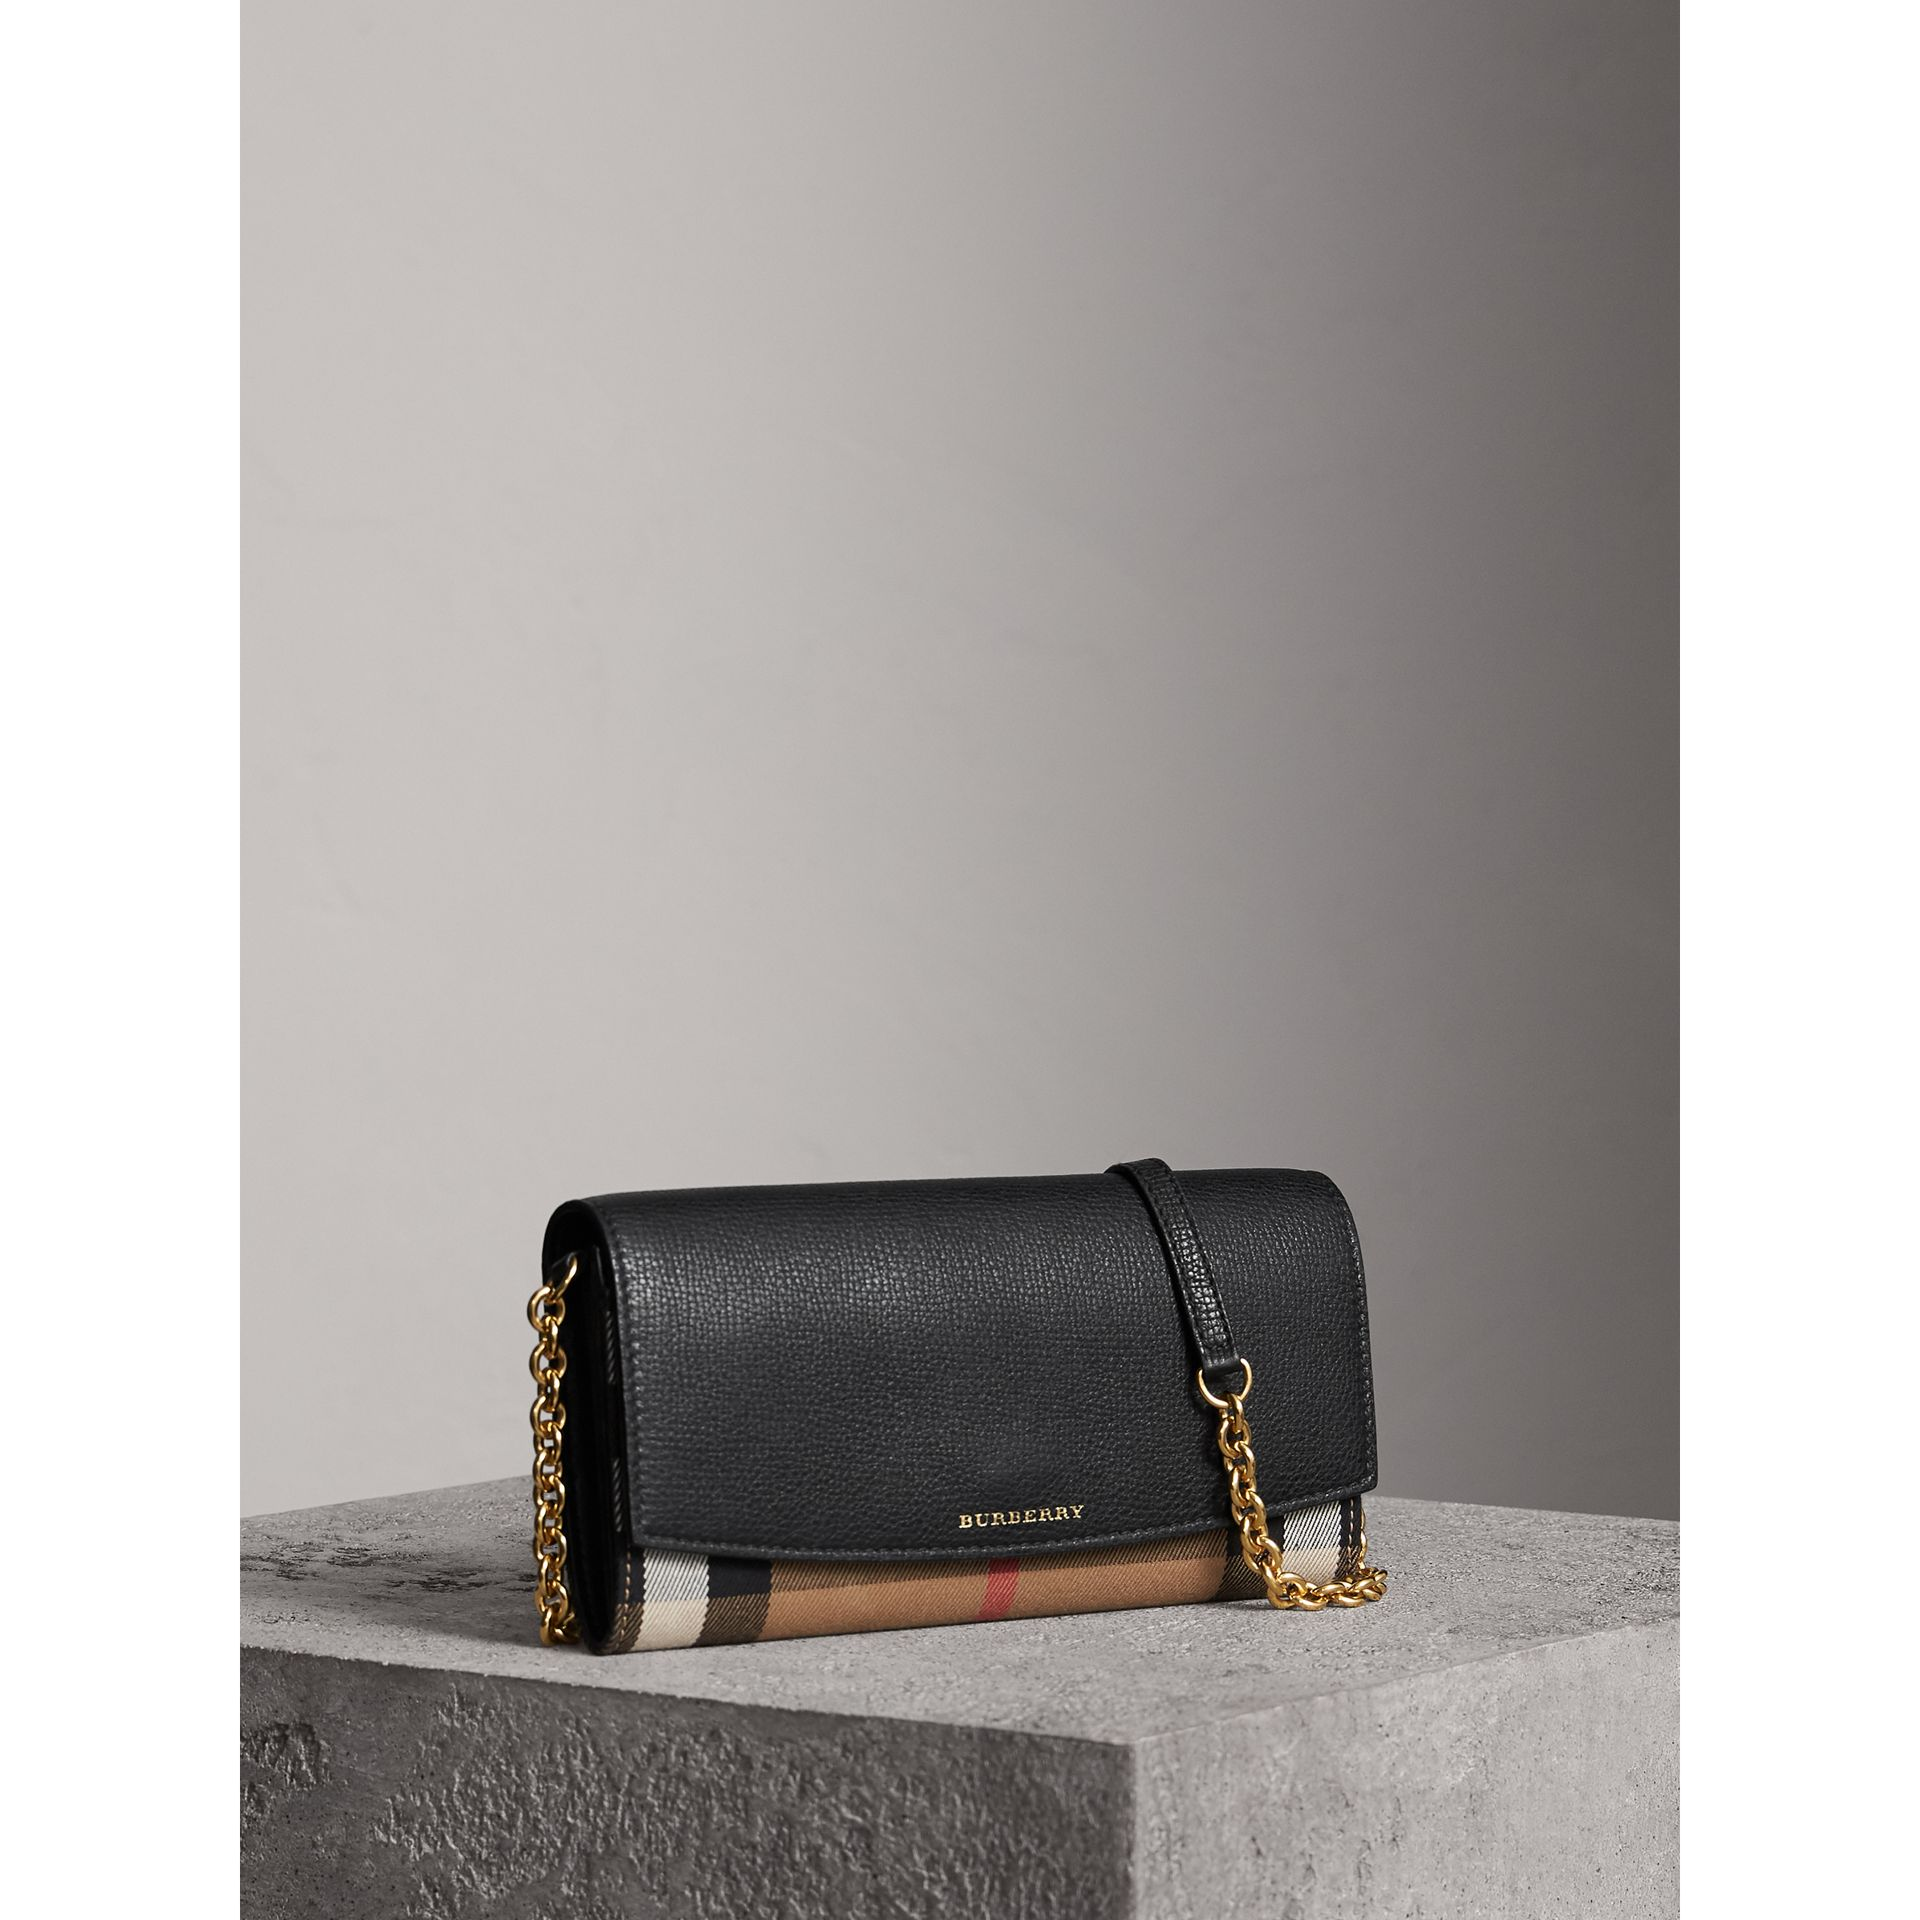 House Check and Leather Wallet with Chain in Black - Women | Burberry - gallery image 1